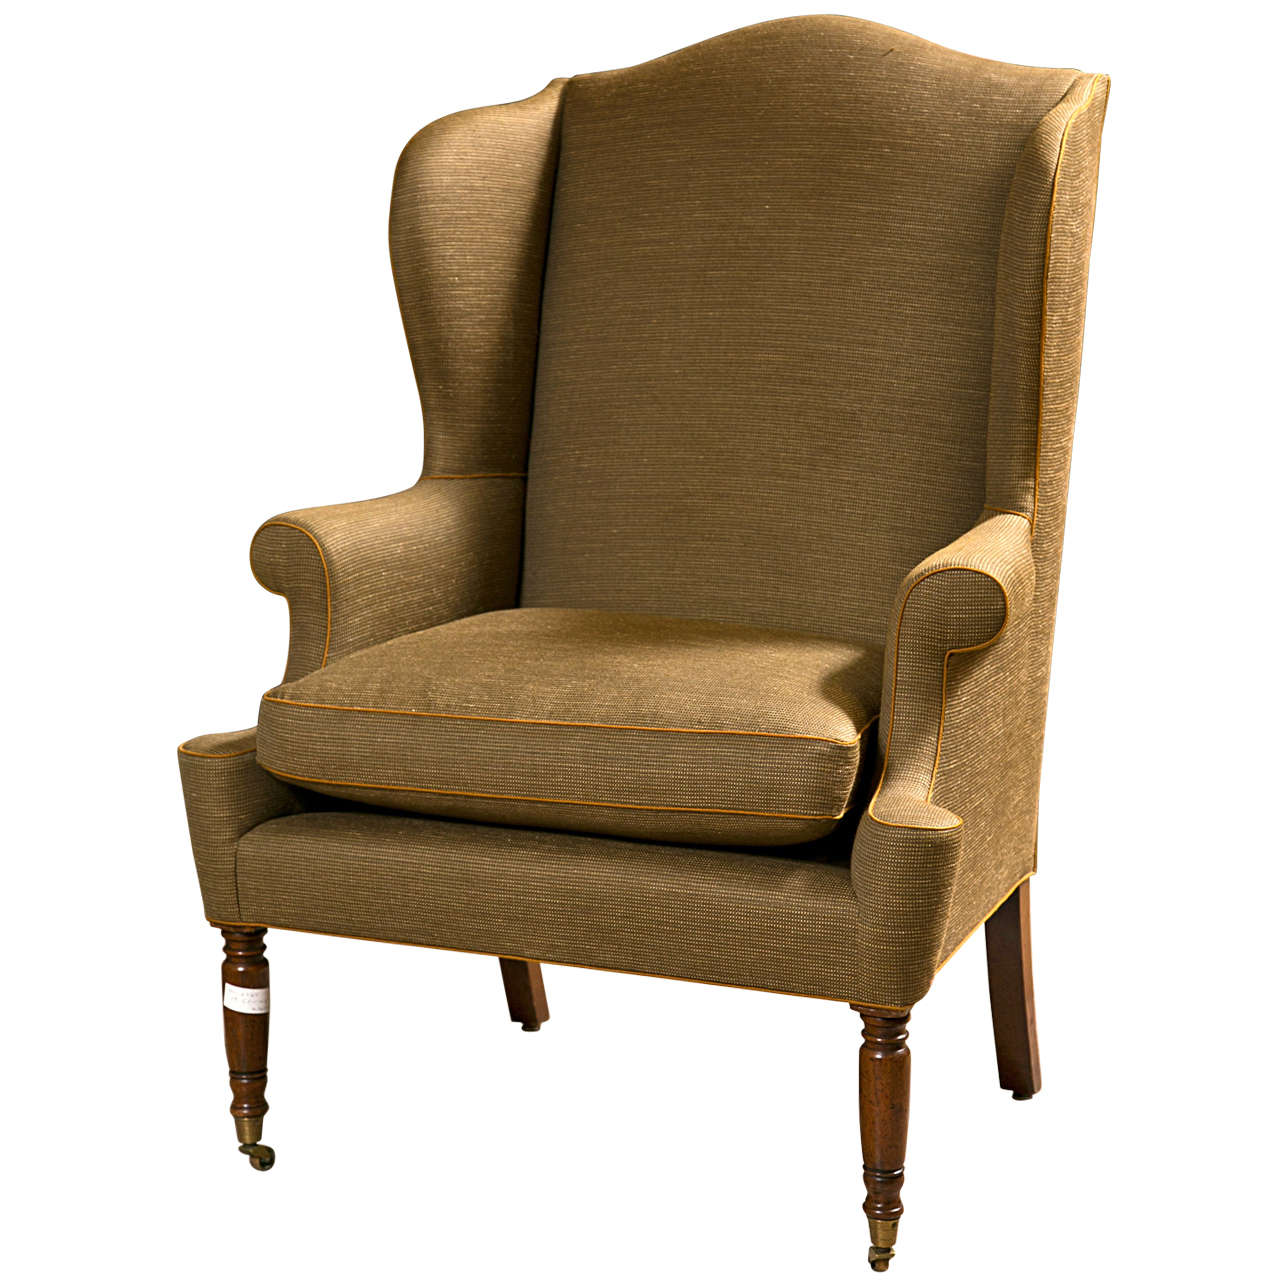 19th century american wingback bergere chair 1